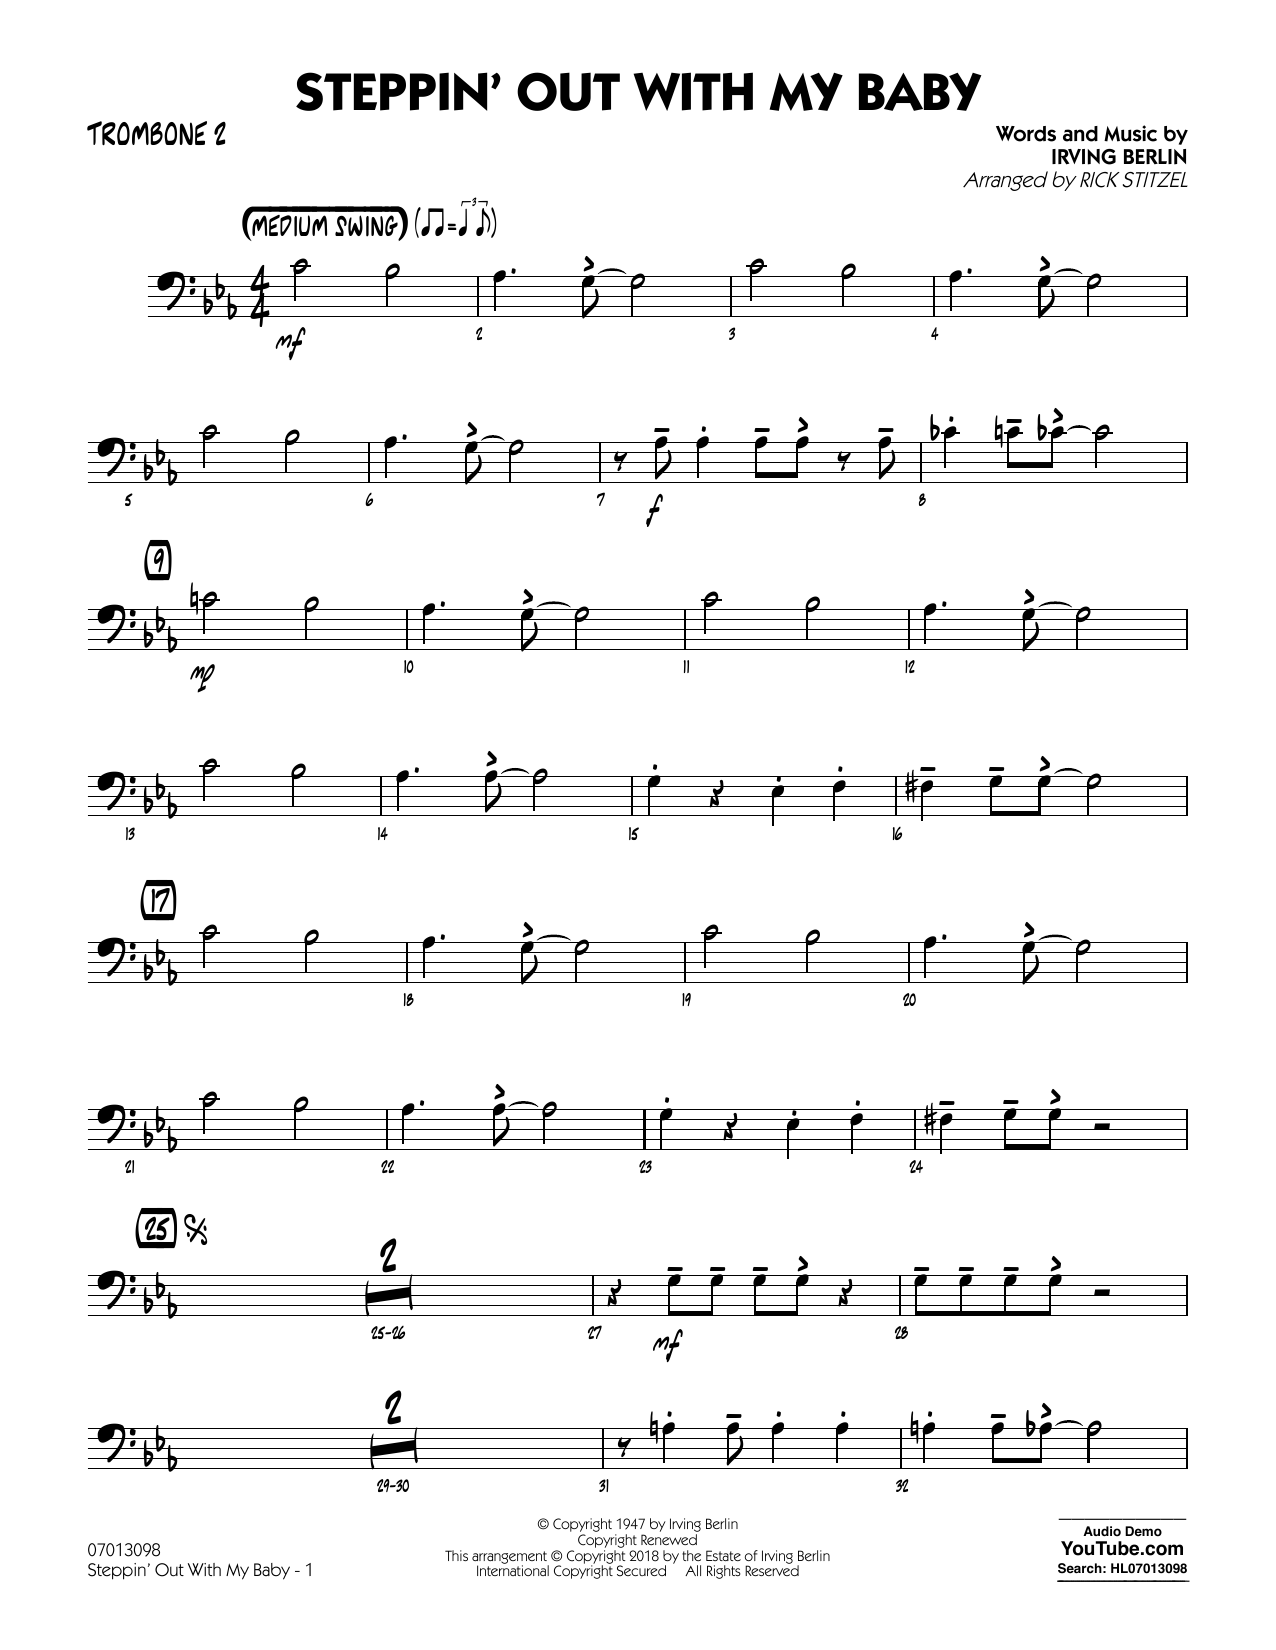 Rick Stitzel Steppin' Out with My Baby - Trombone 2 sheet music notes printable PDF score